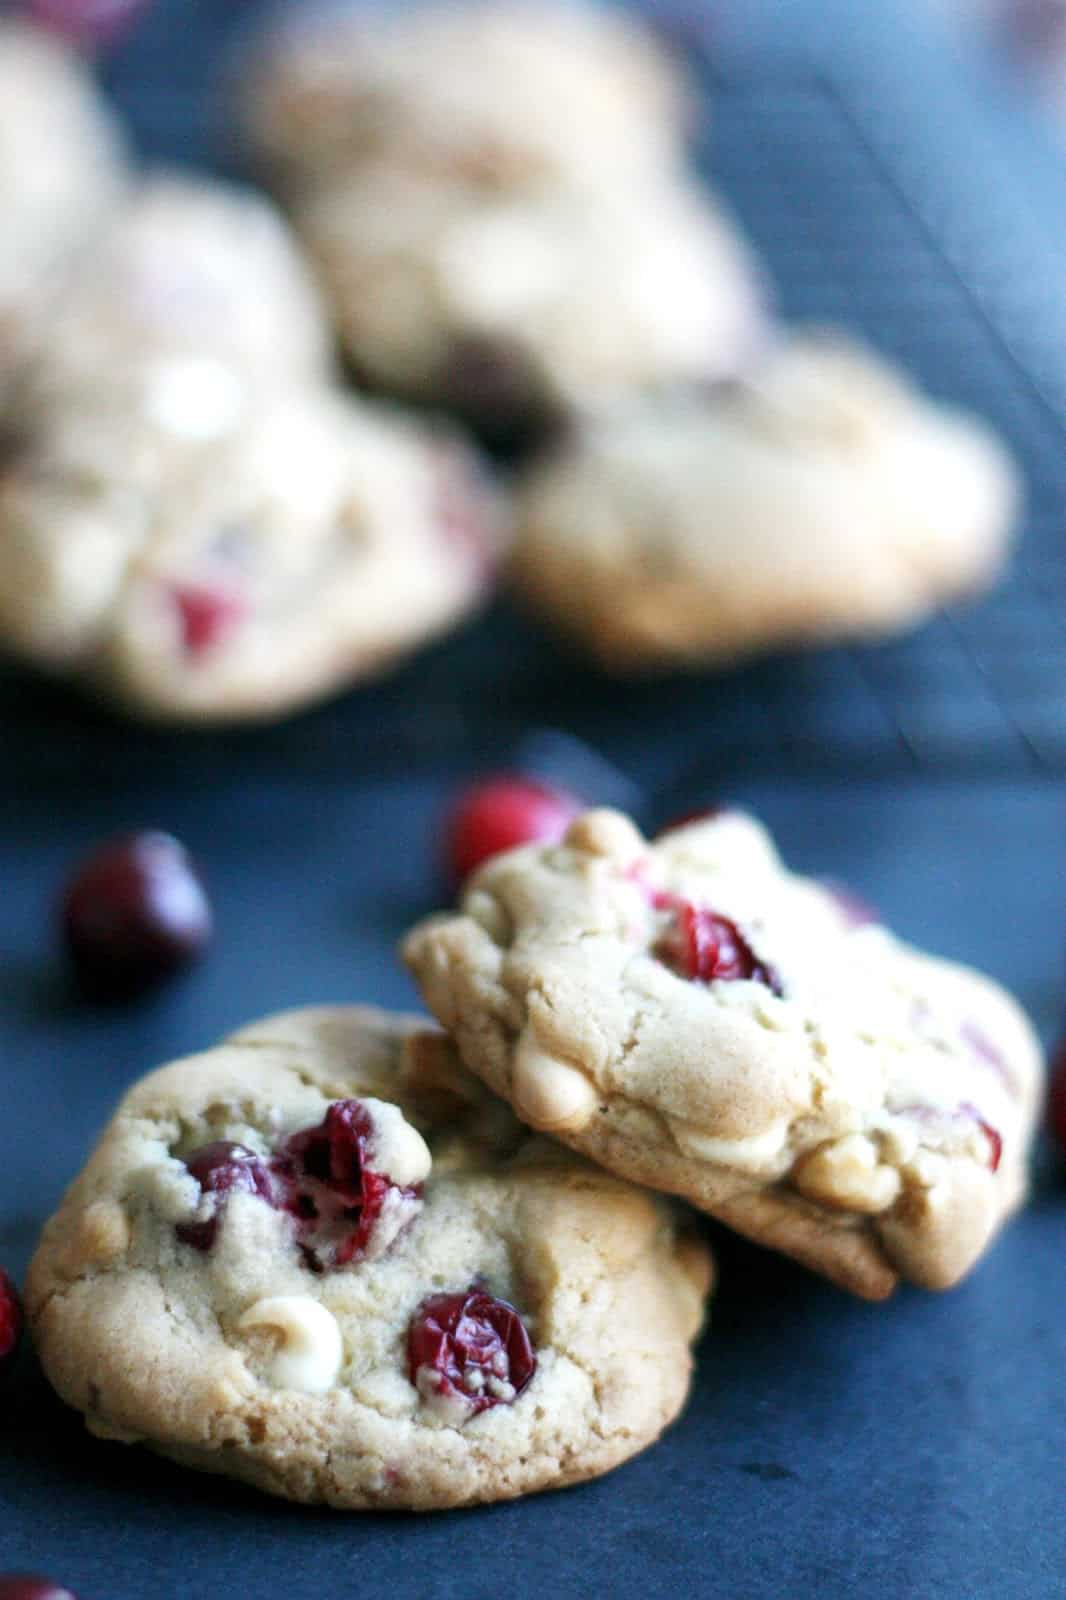 These cranberry-walnut cookies with white chocolate chips are the perfect combination of tart, sweet, and crunchy. This is my FAVORITE cookie recipe for cooler weather!